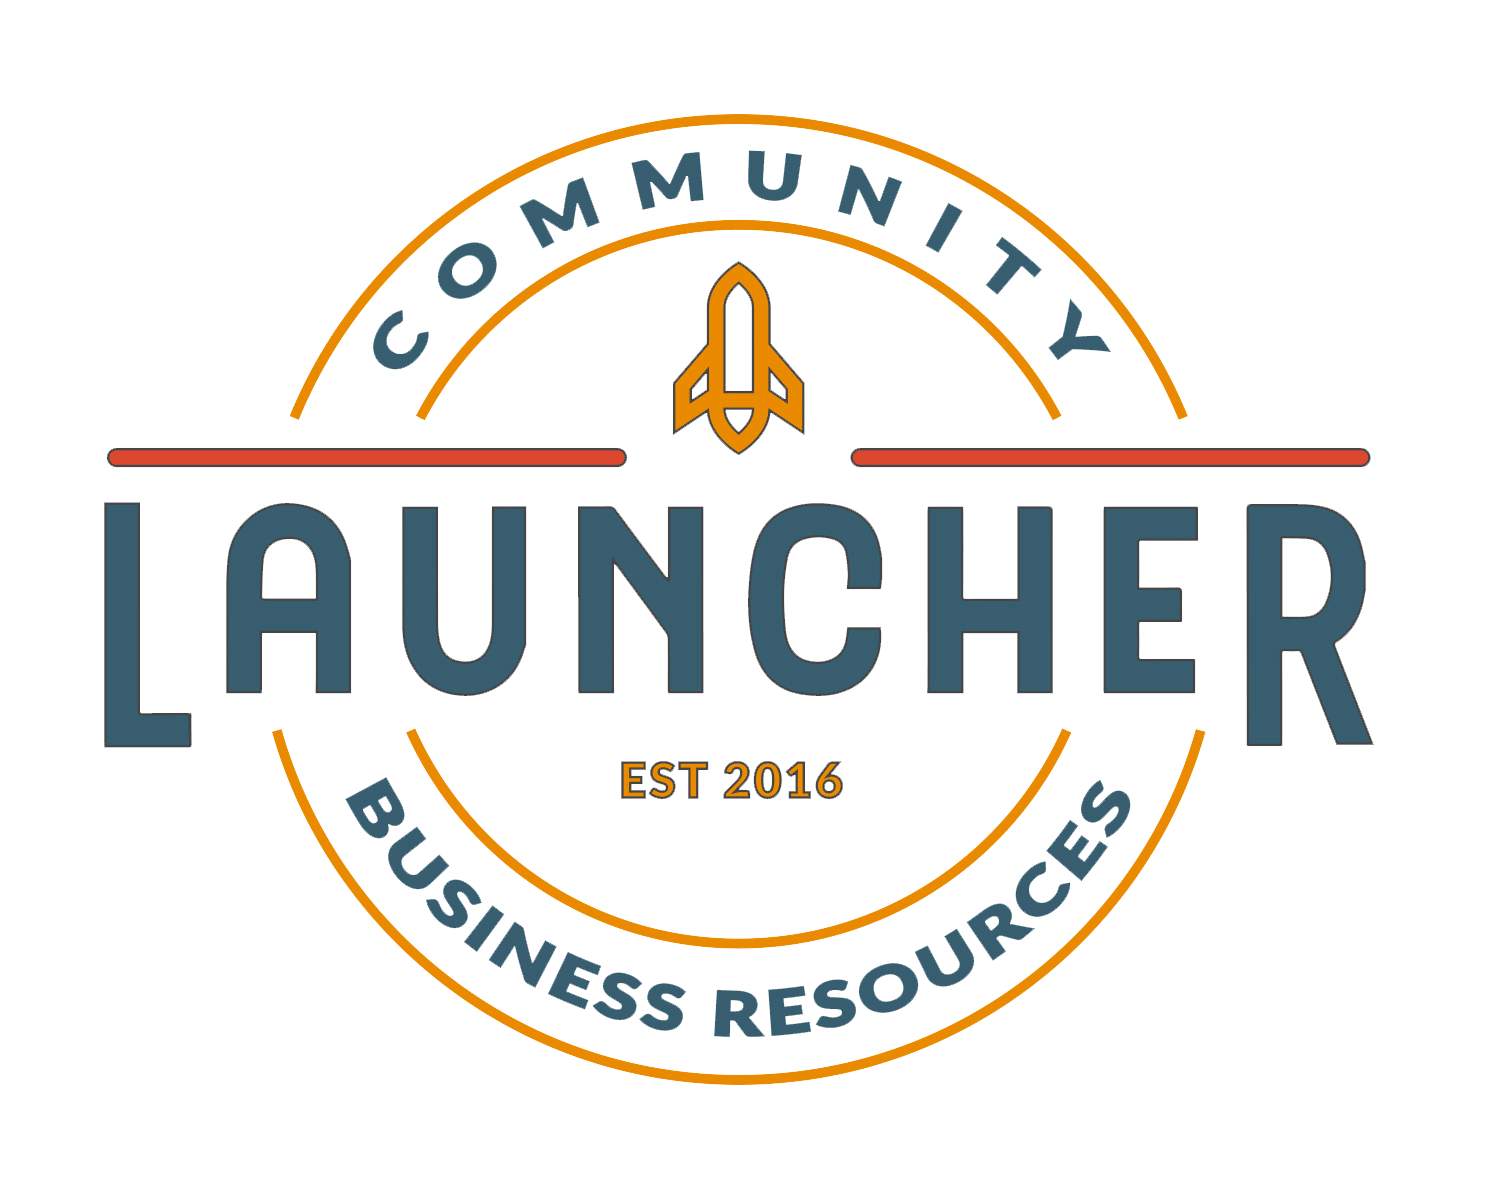 Launcher Business Resources